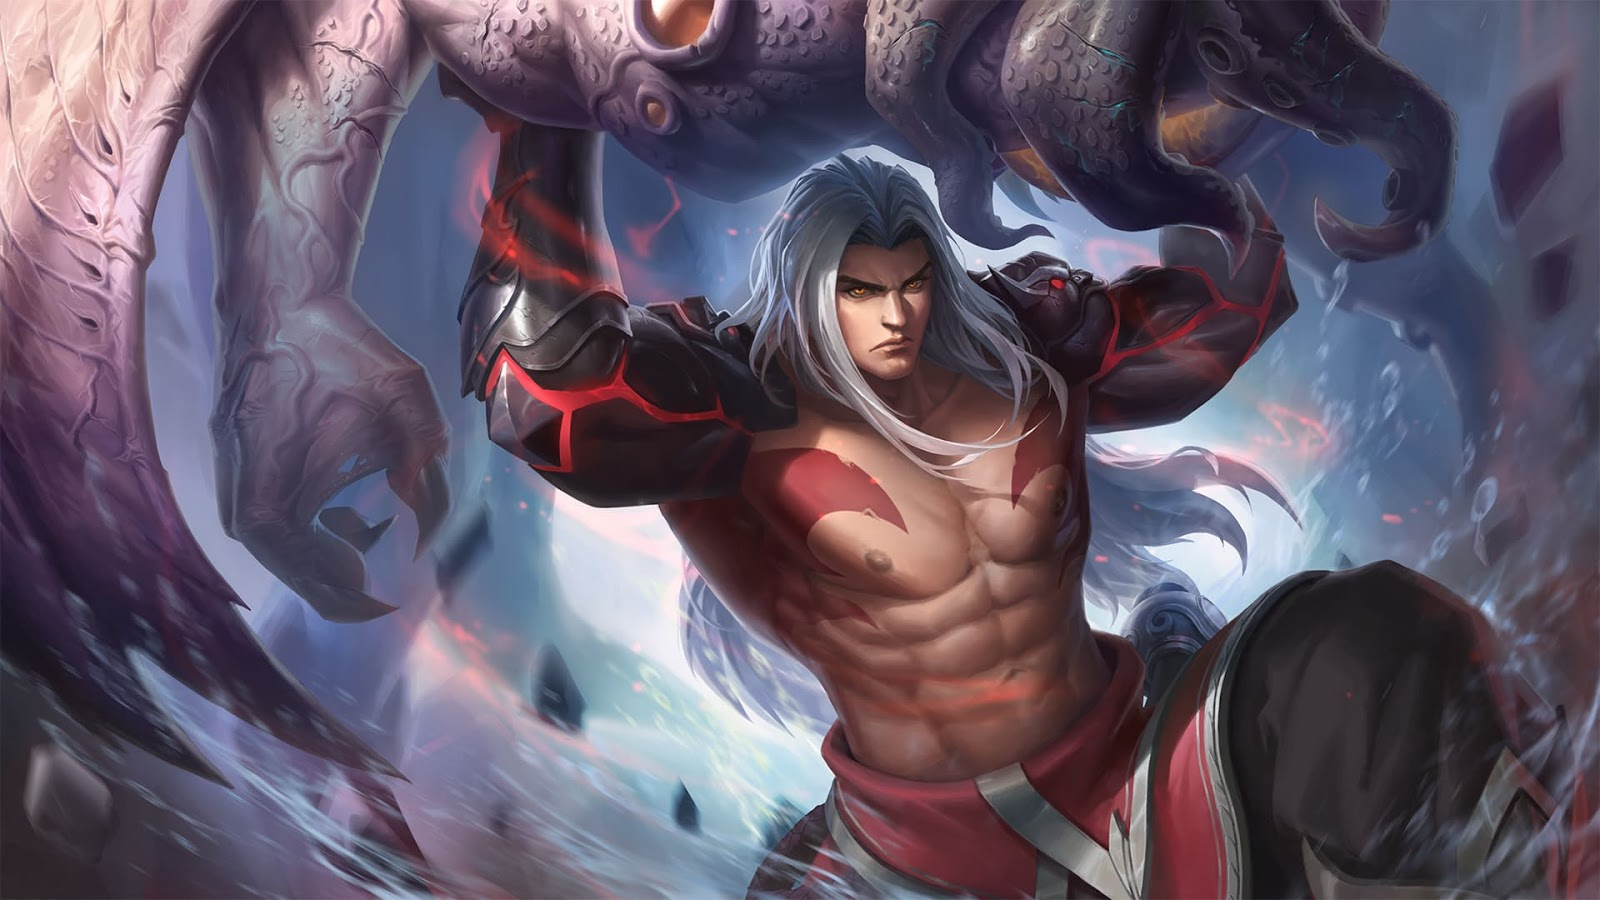 Wallpaper Badang Ironfist Skin Mobile Legends HD for PC